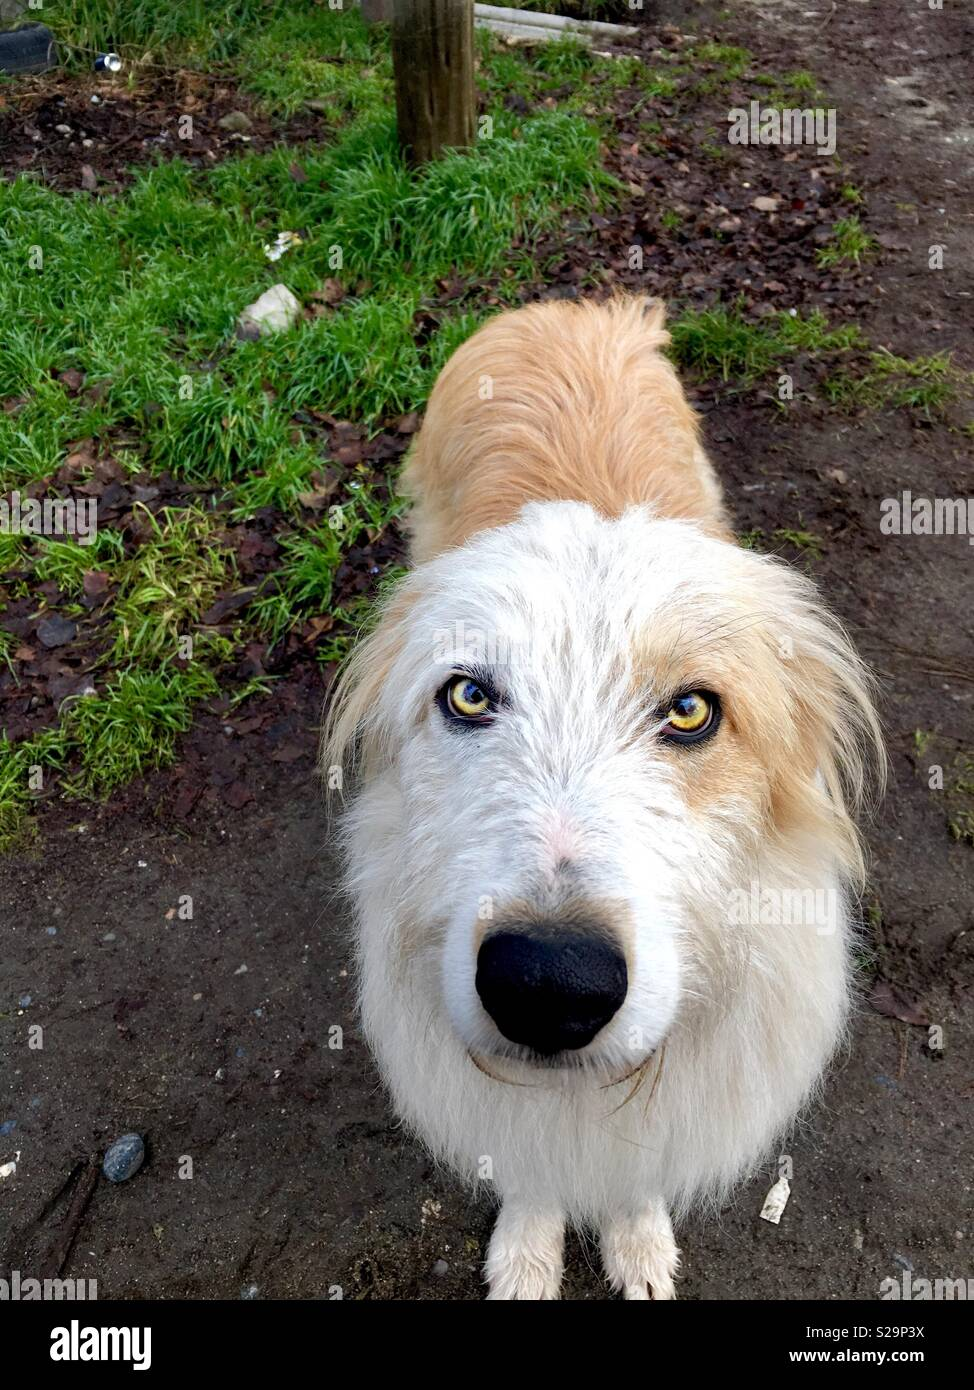 White dog whith yellow eyes looking at you - Stock Image